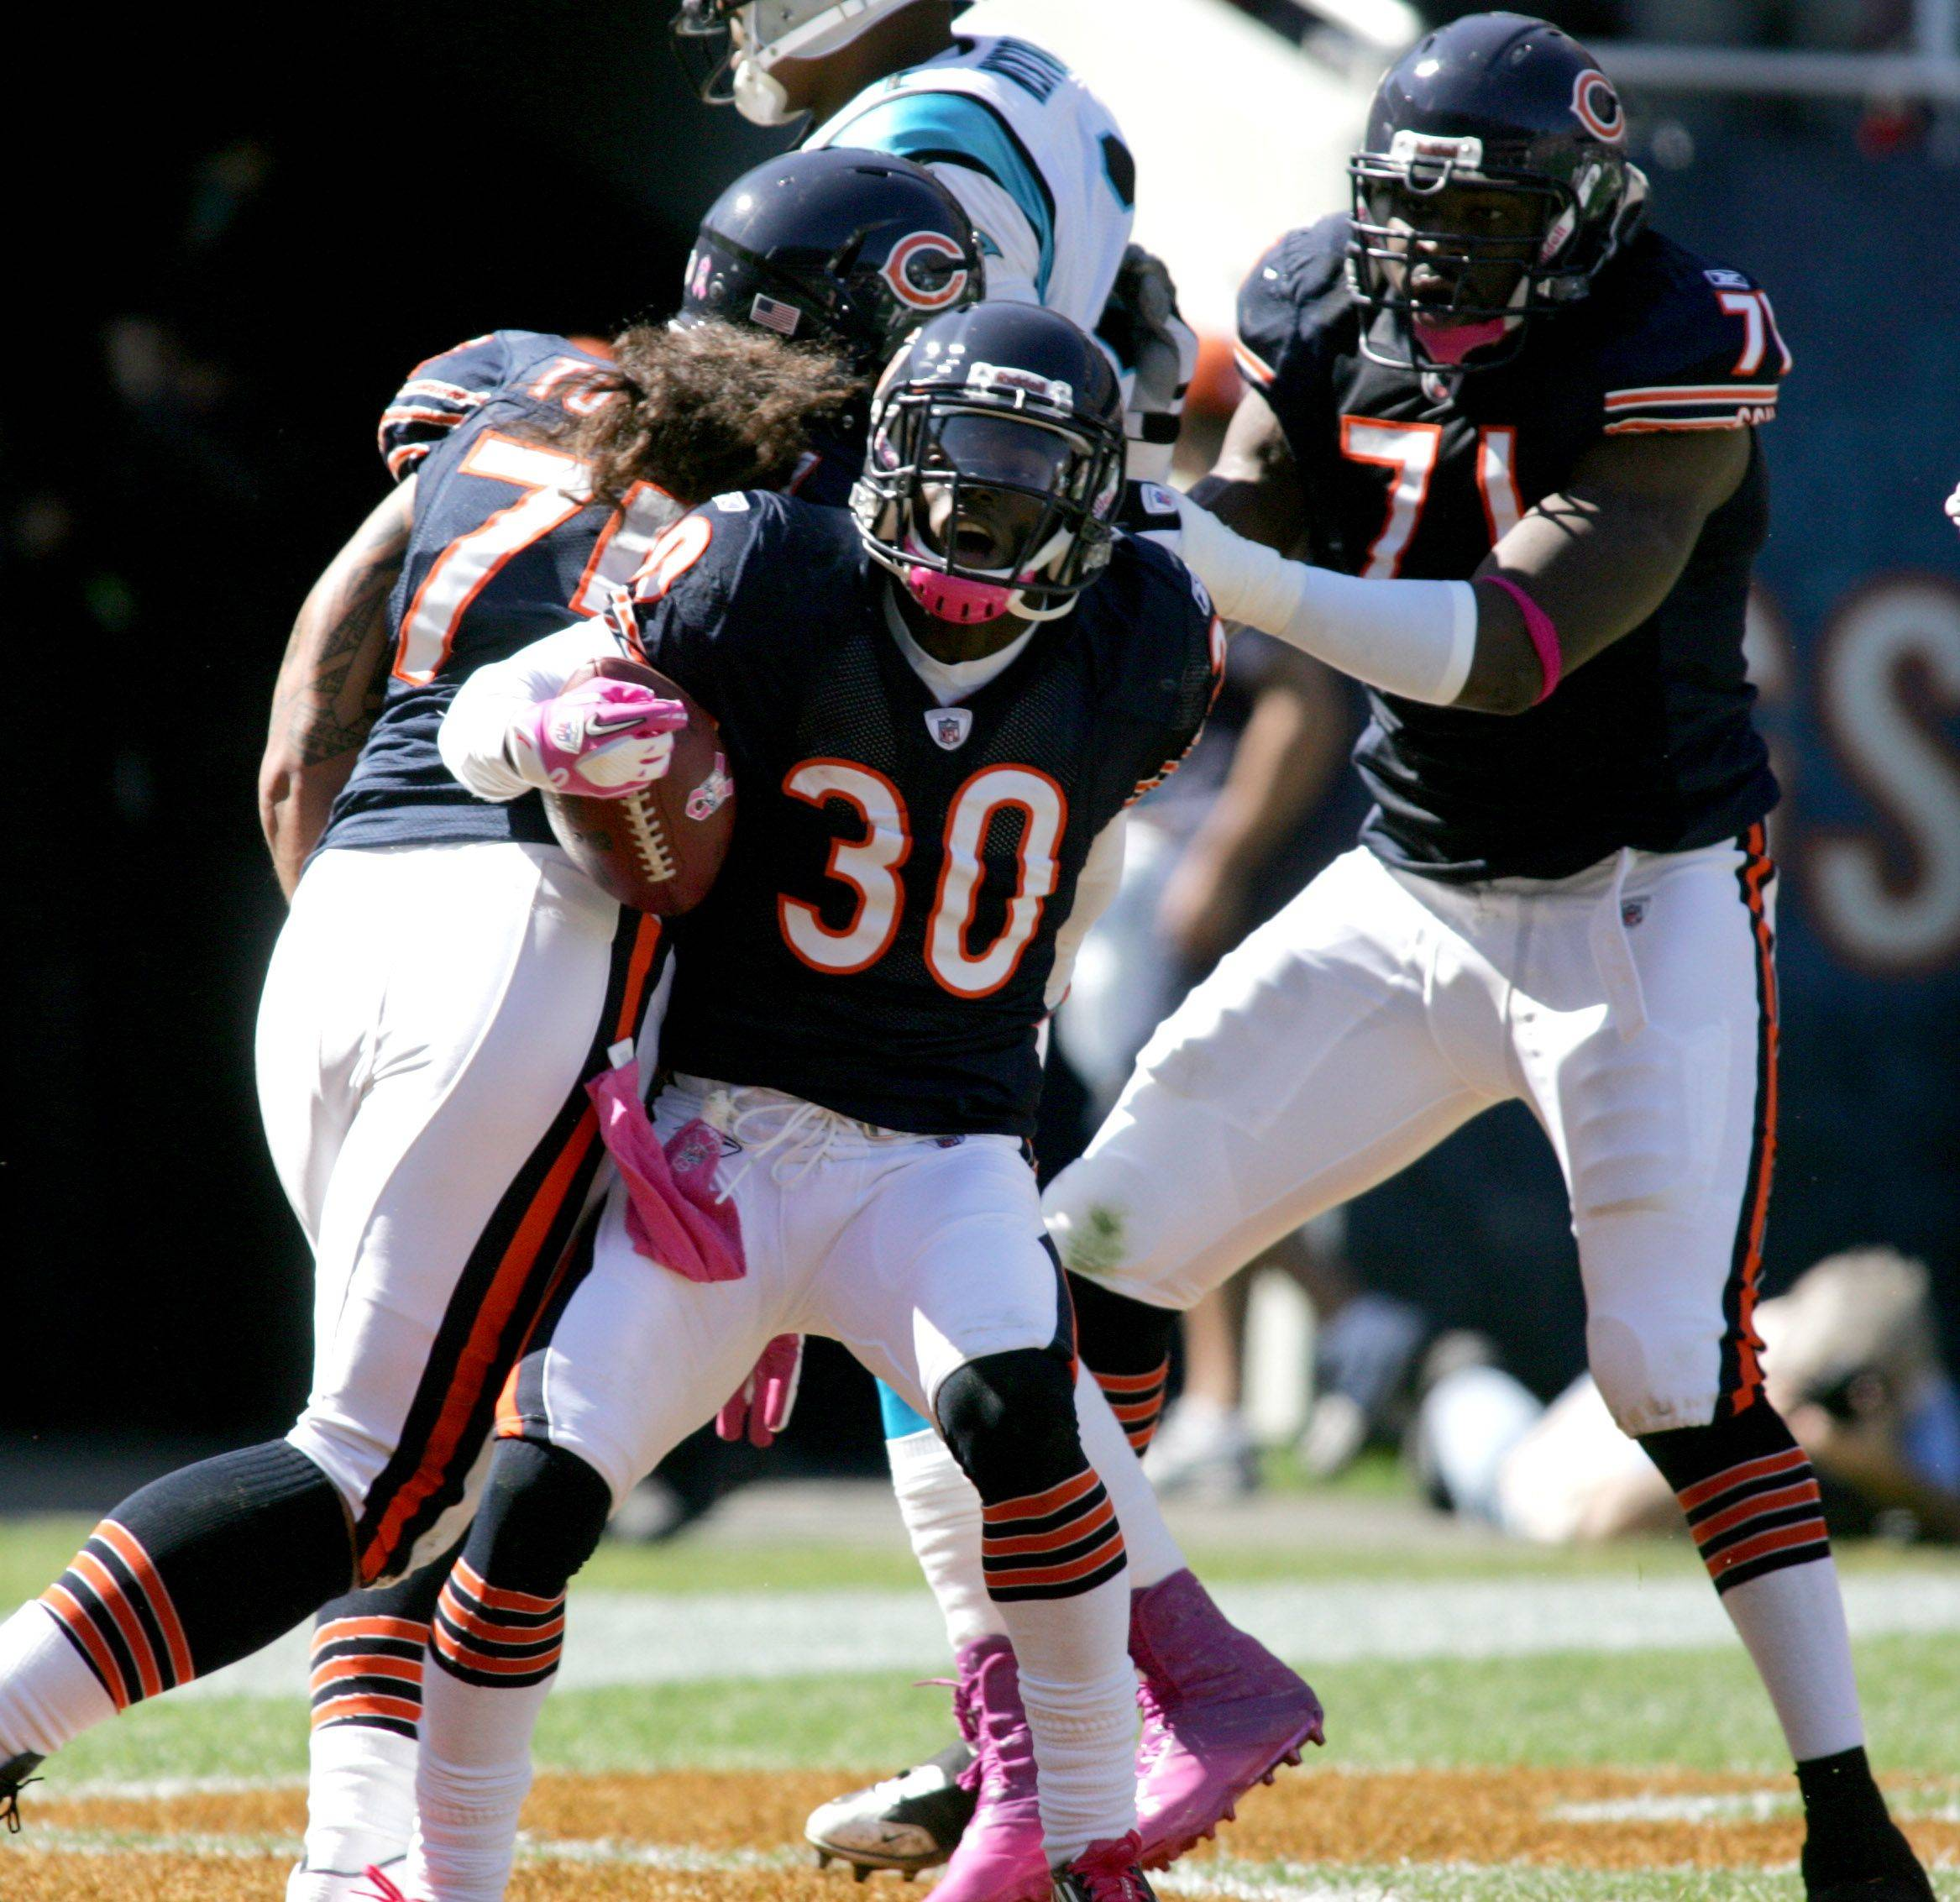 D.J. Moore of the Chicago Bears makes a touchdown in the first quarter against the Carolina Panthers at Soldier Field on Sunday.